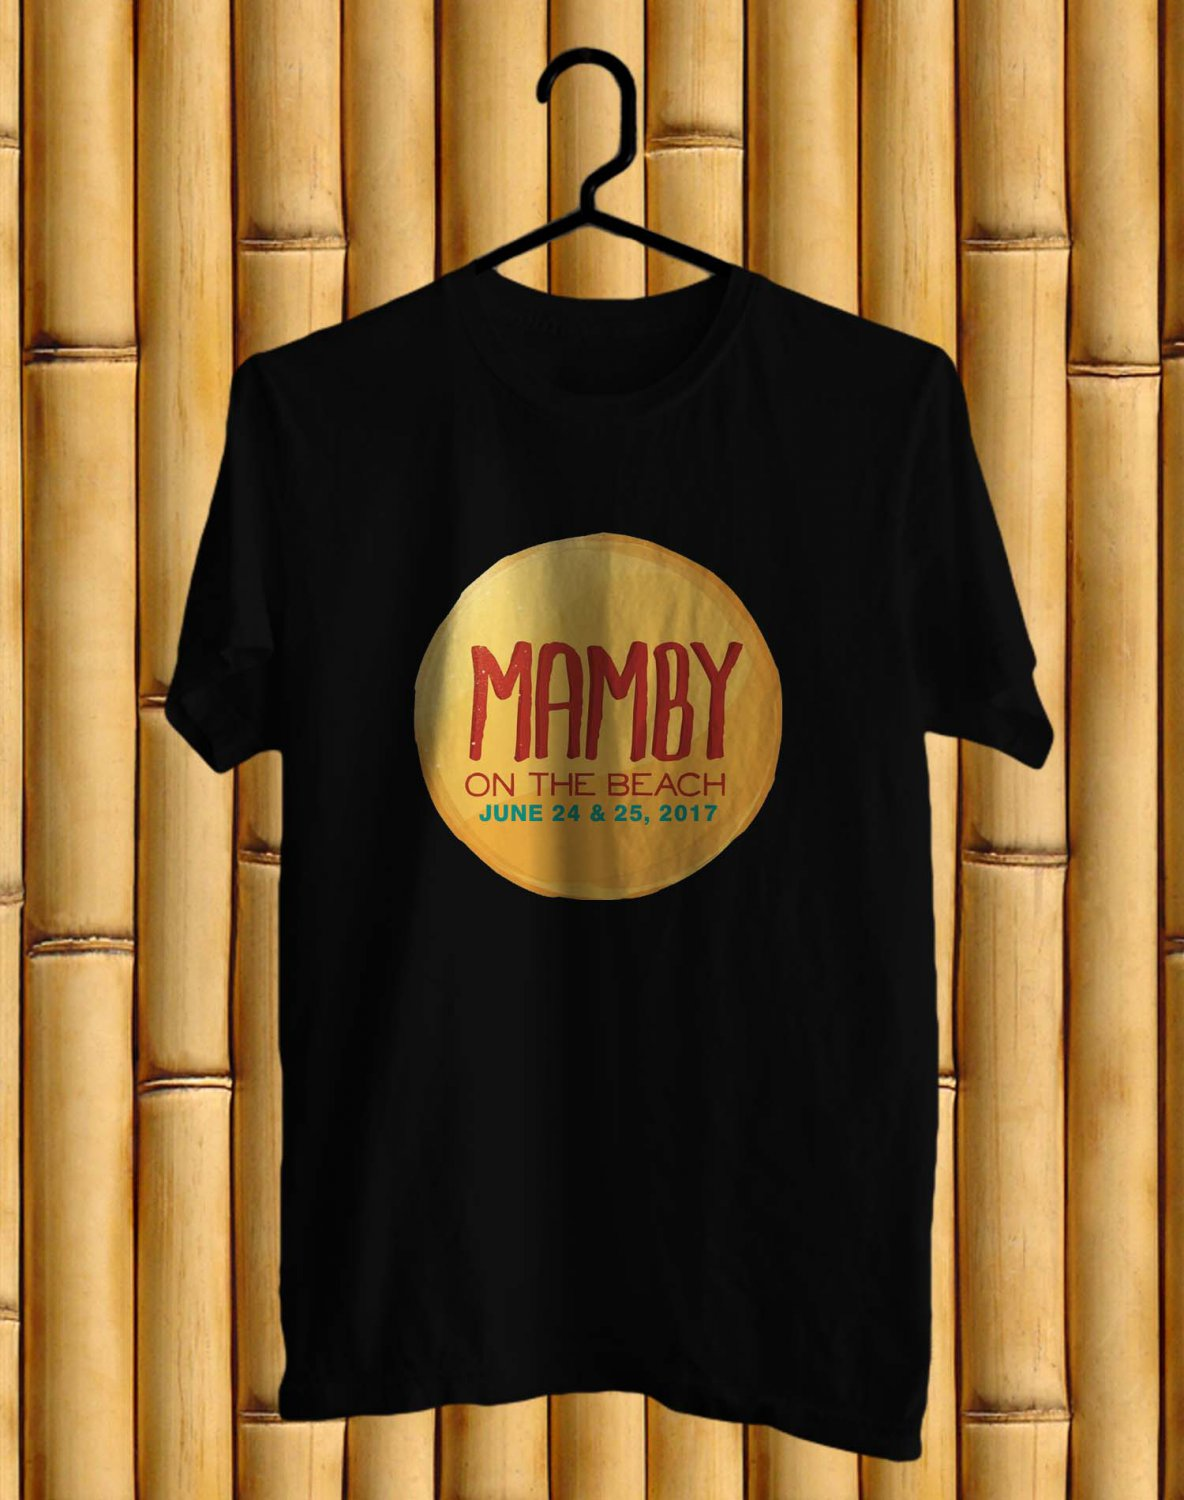 Mamby On The Beach Fest 2017 Black Tee's Front Side by Complexart c2